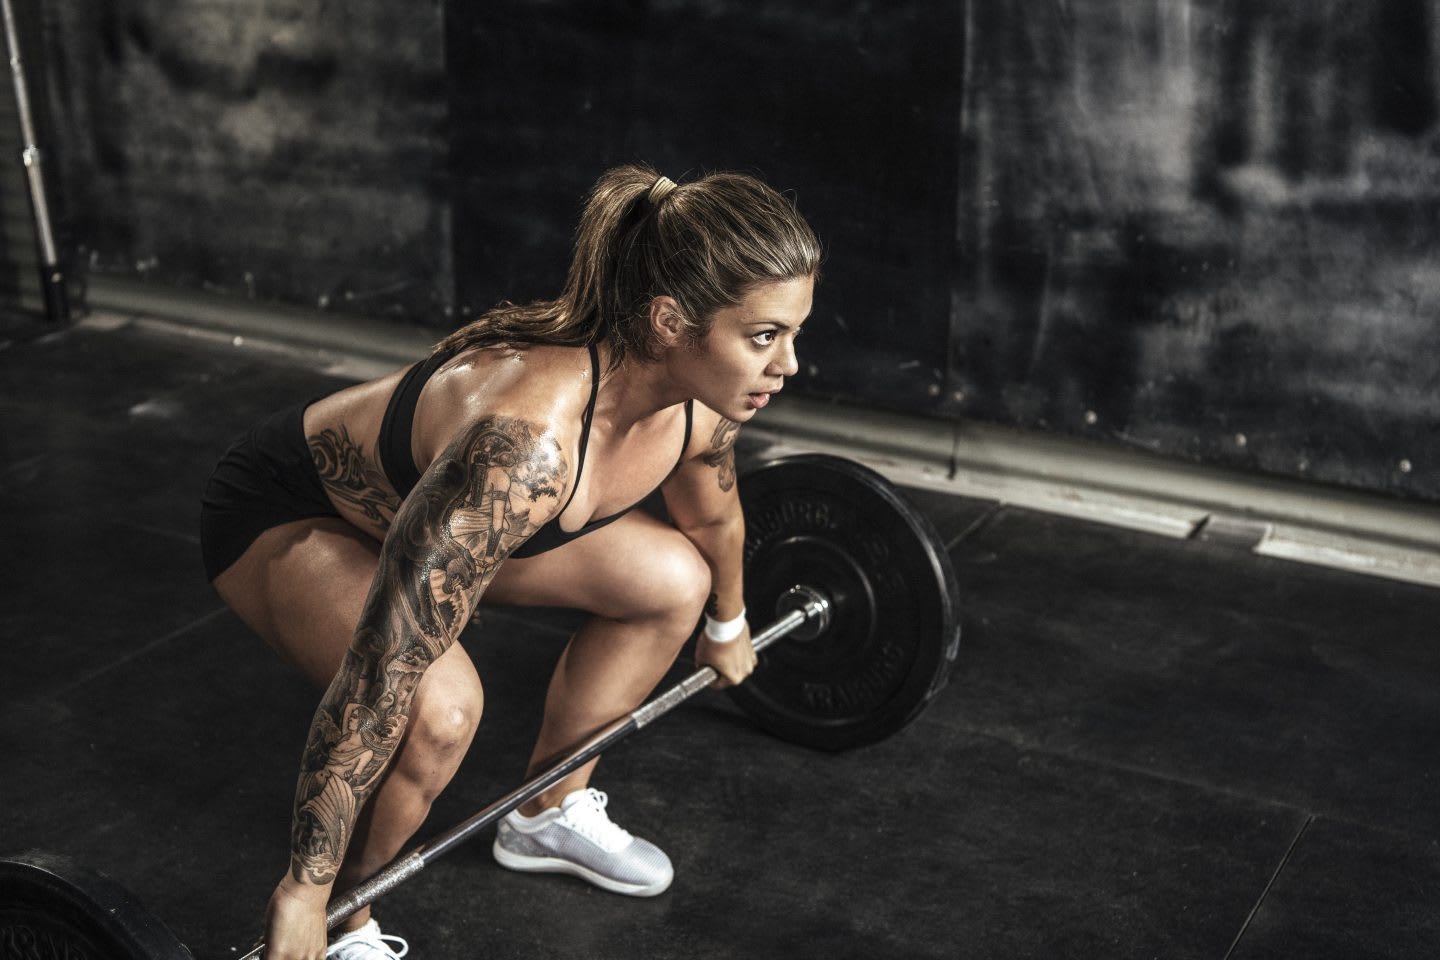 Girl bending down lifting weights, heavy, strong, workout, exercise, athlete, woman, Reebok, CrossFit, sports marketing, GamePlan A